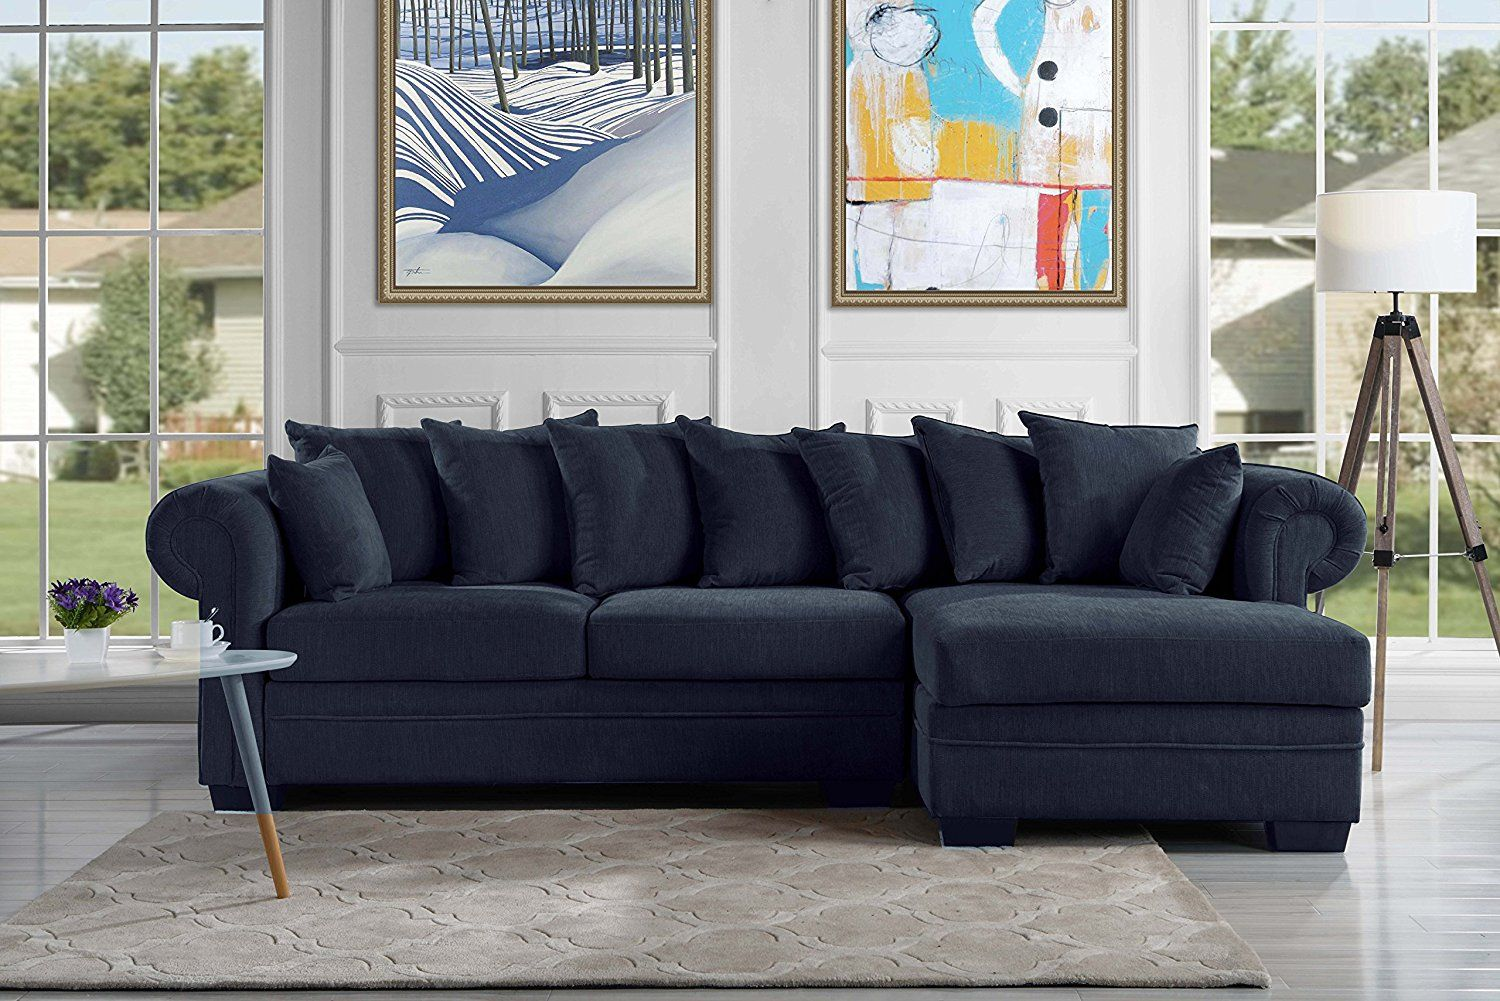 15 Jawdroppingly Cheap Sectional Sofa You Can Buy Online